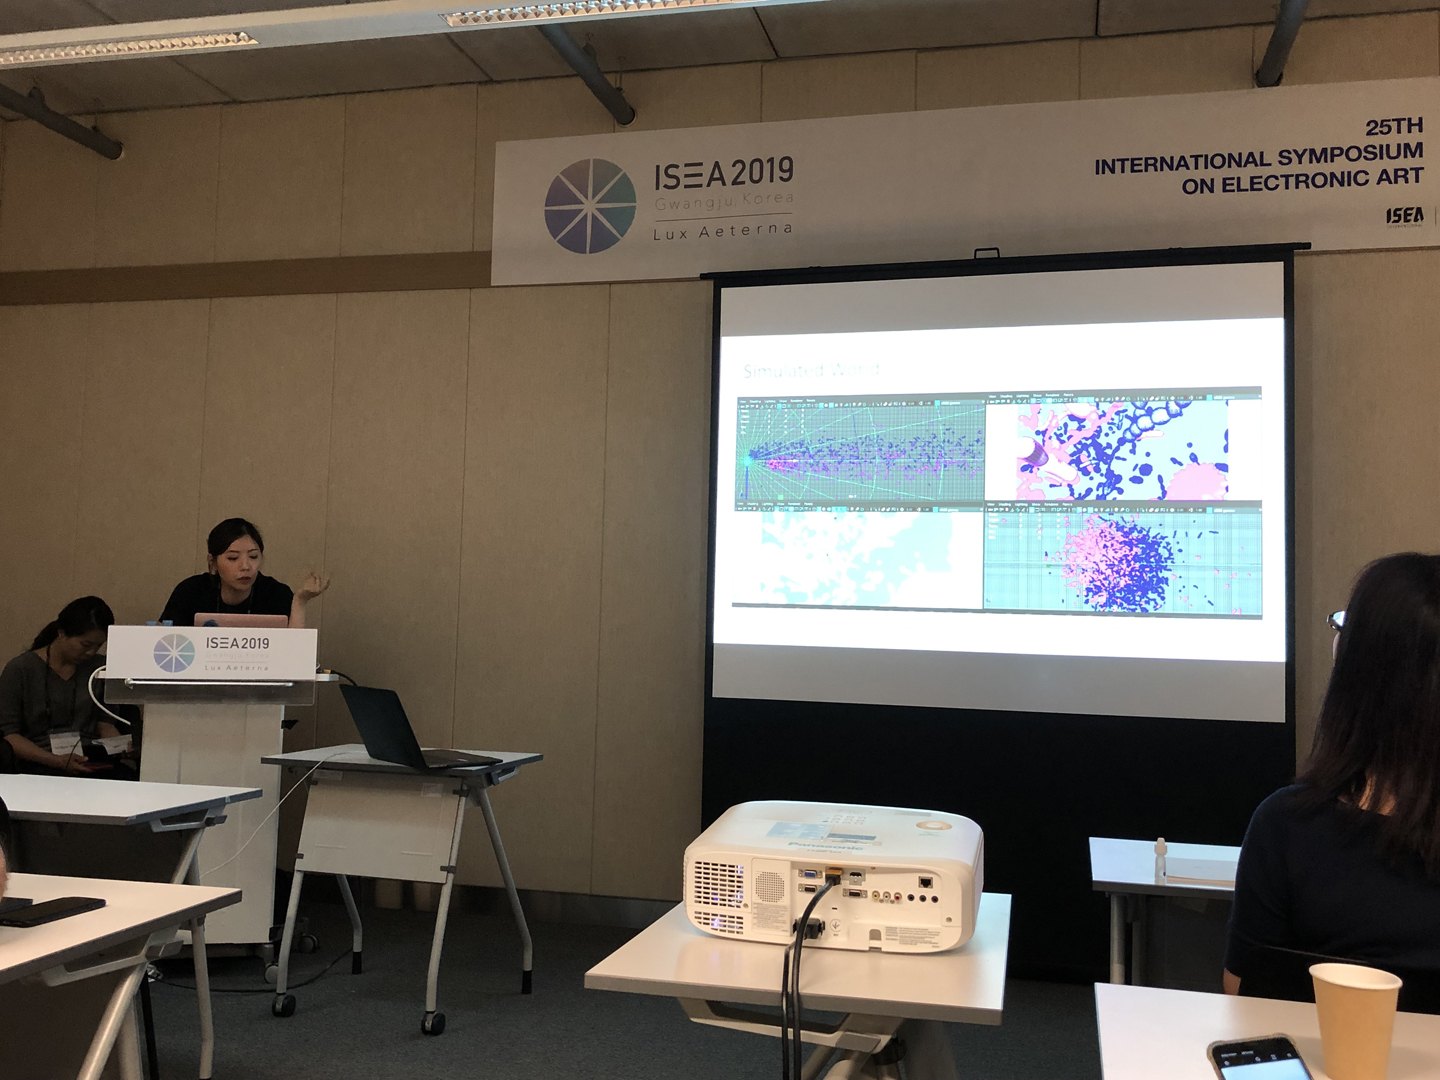 ©ISEA2019: 25th International Symposium on Electronic Art, Jongcheon Shin, Siwon Lee, Suk Chon, Keyan Jiang, and Joonsung Yoon, Seeing Life: The Impalpable Entanglement of an Artist and Microbes in Bio-Art